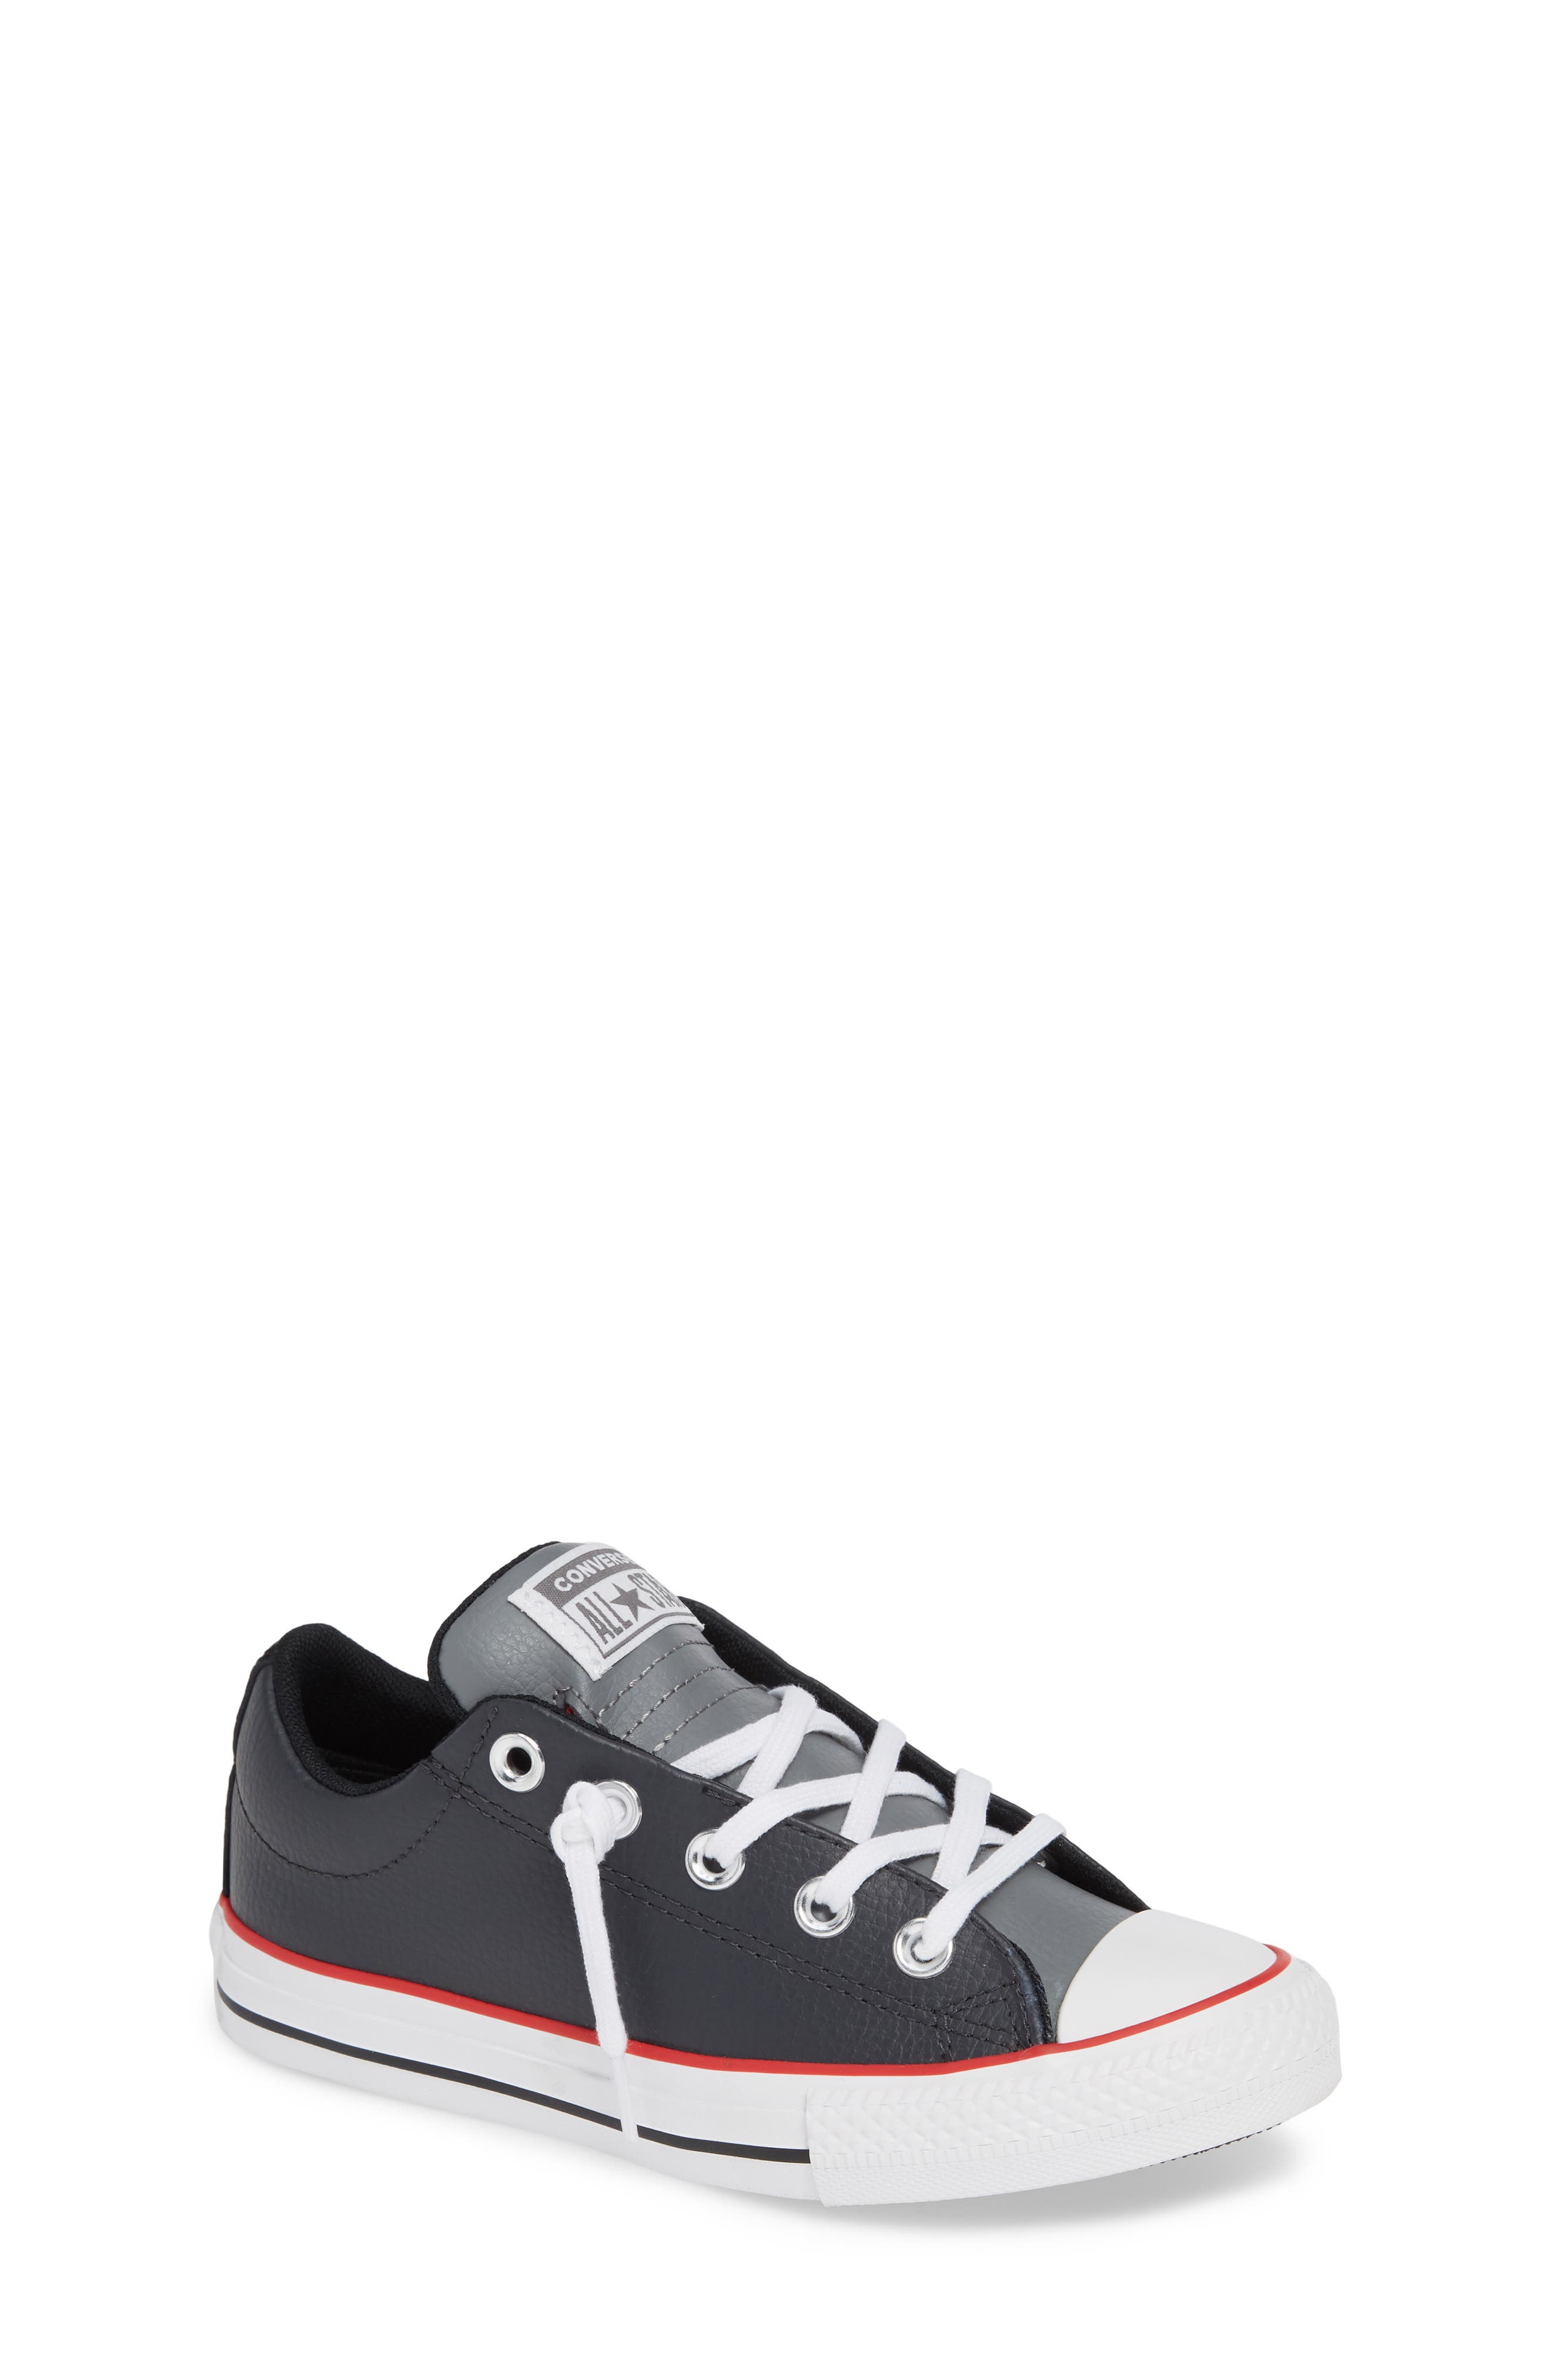 Chuck Taylor<sup>®</sup> All Star<sup>®</sup> Collegiate Street Leather Slip-On Sneaker,                         Main,                         color, ALMOST BLACK